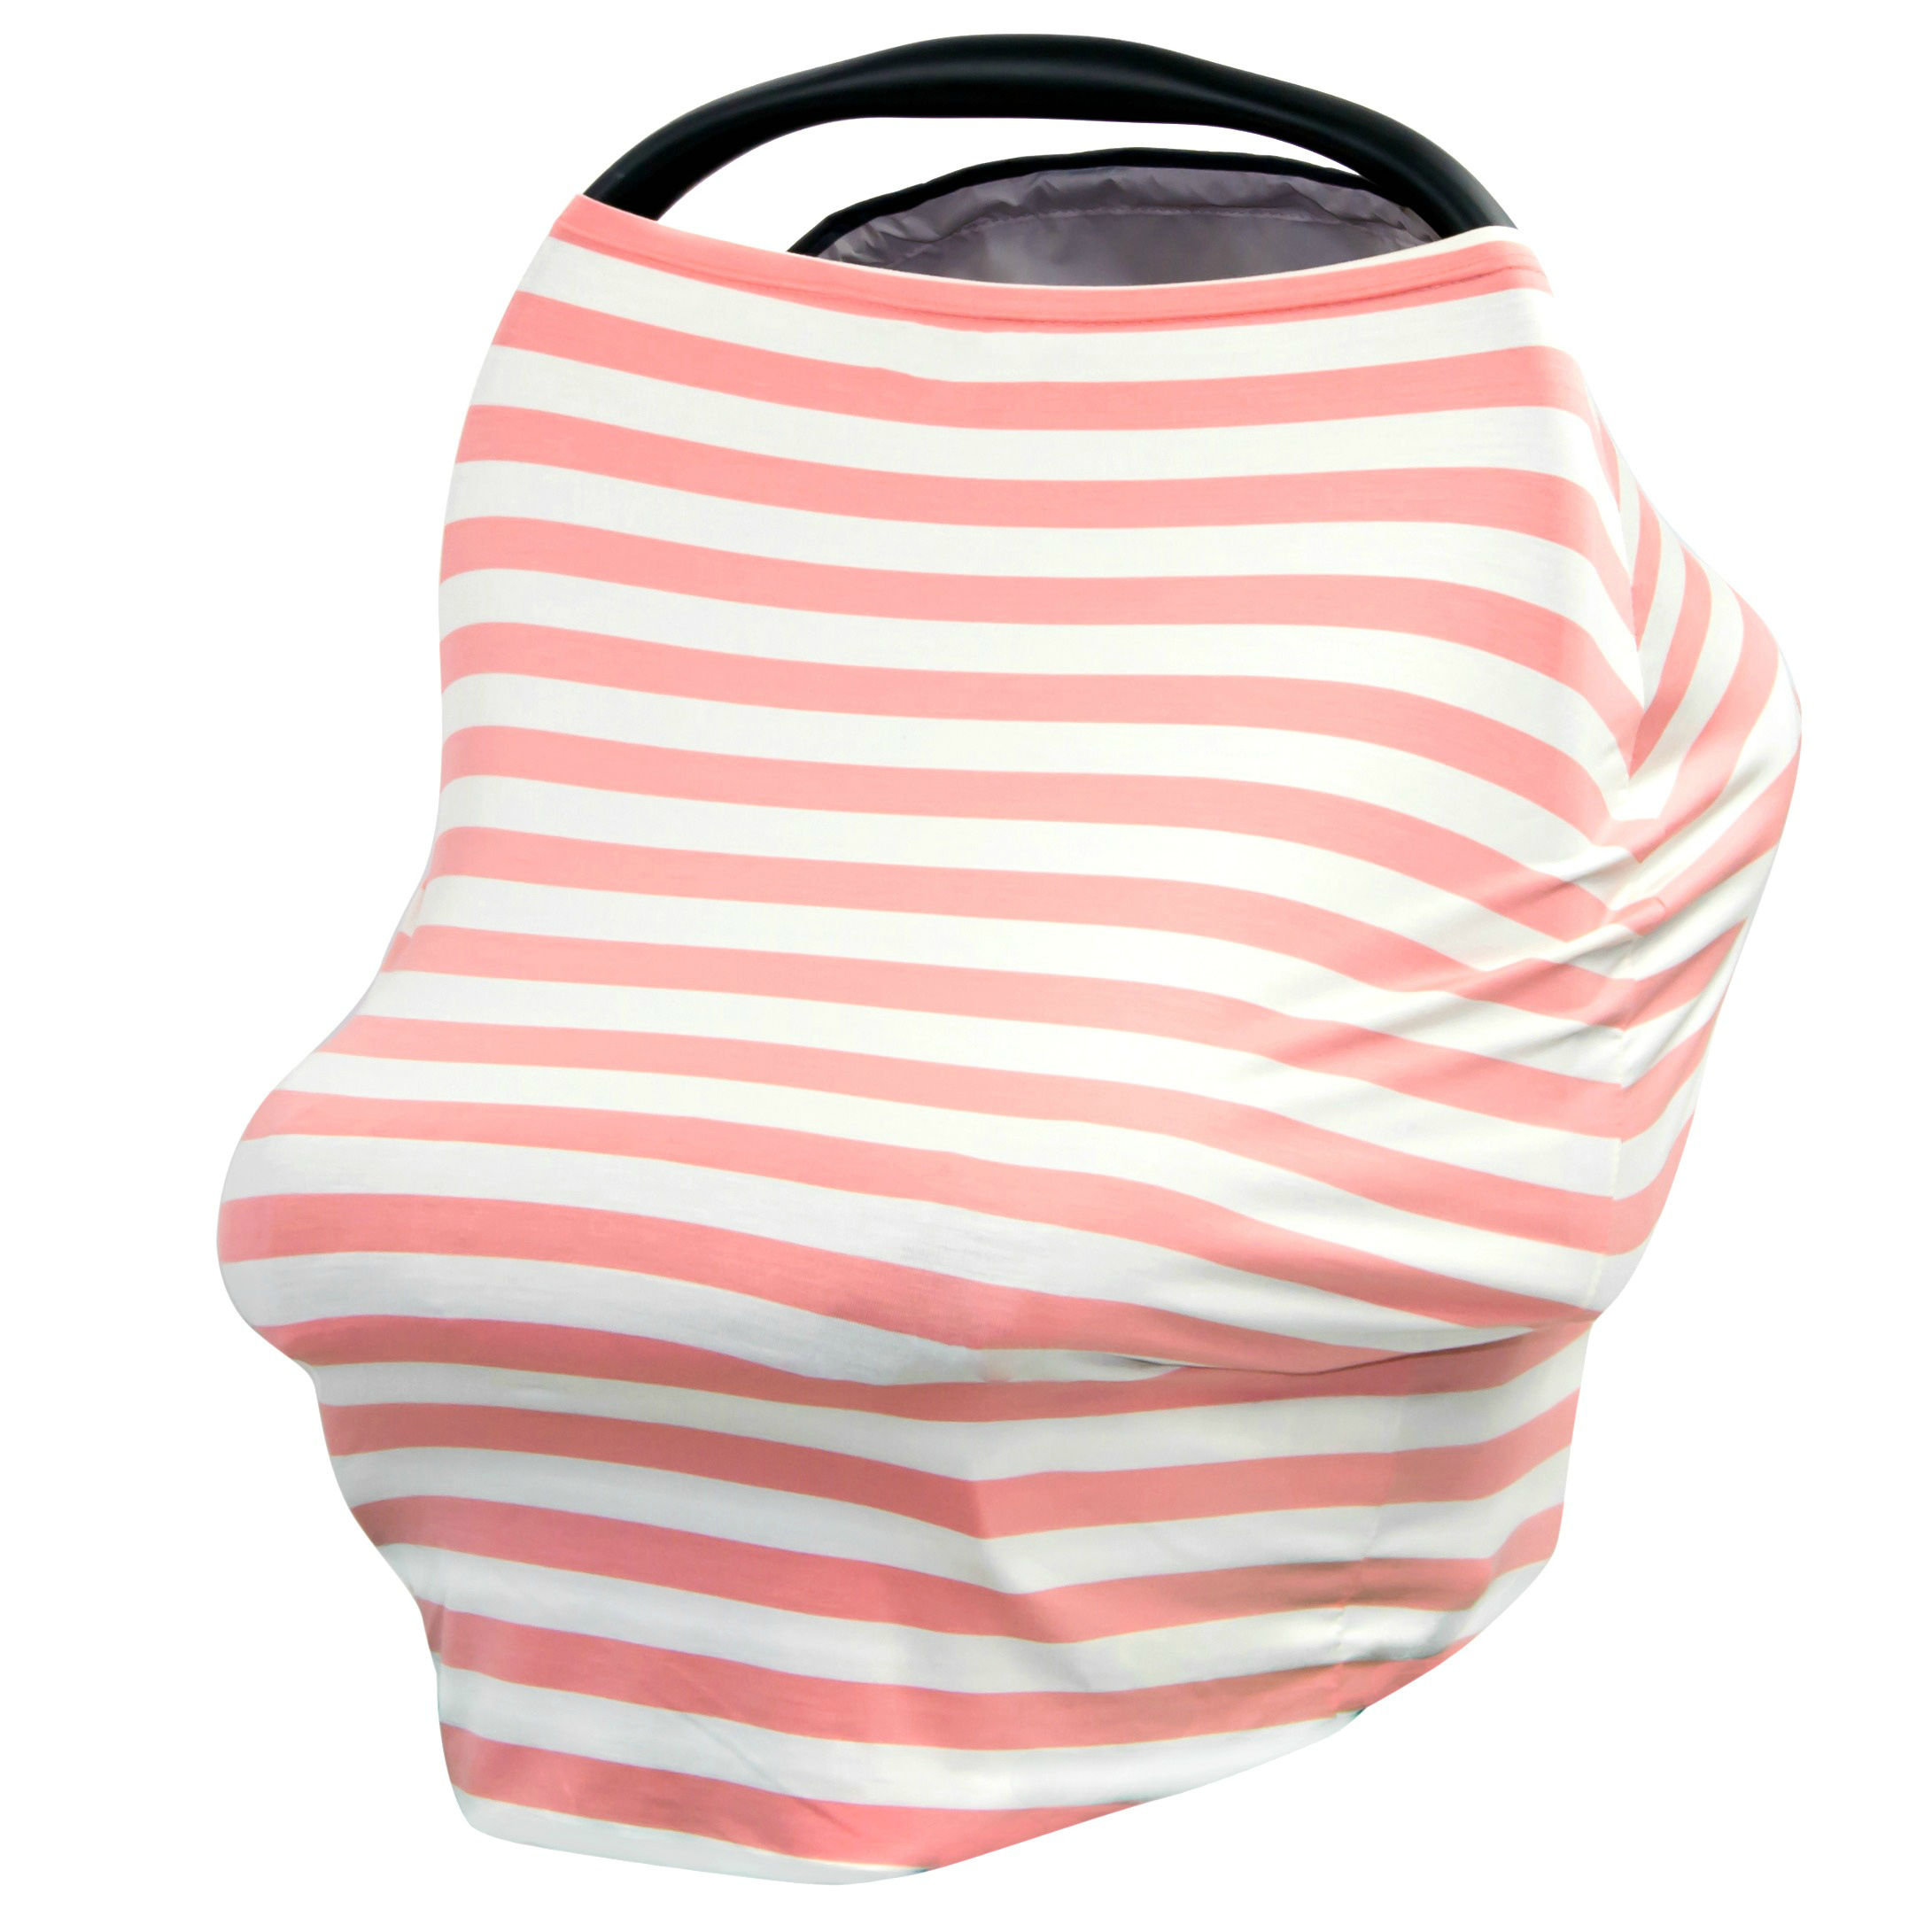 JLIKA Baby Car Seat Canopy Cover and Stretchy Nursing Cover - Peach Ivory Stripe